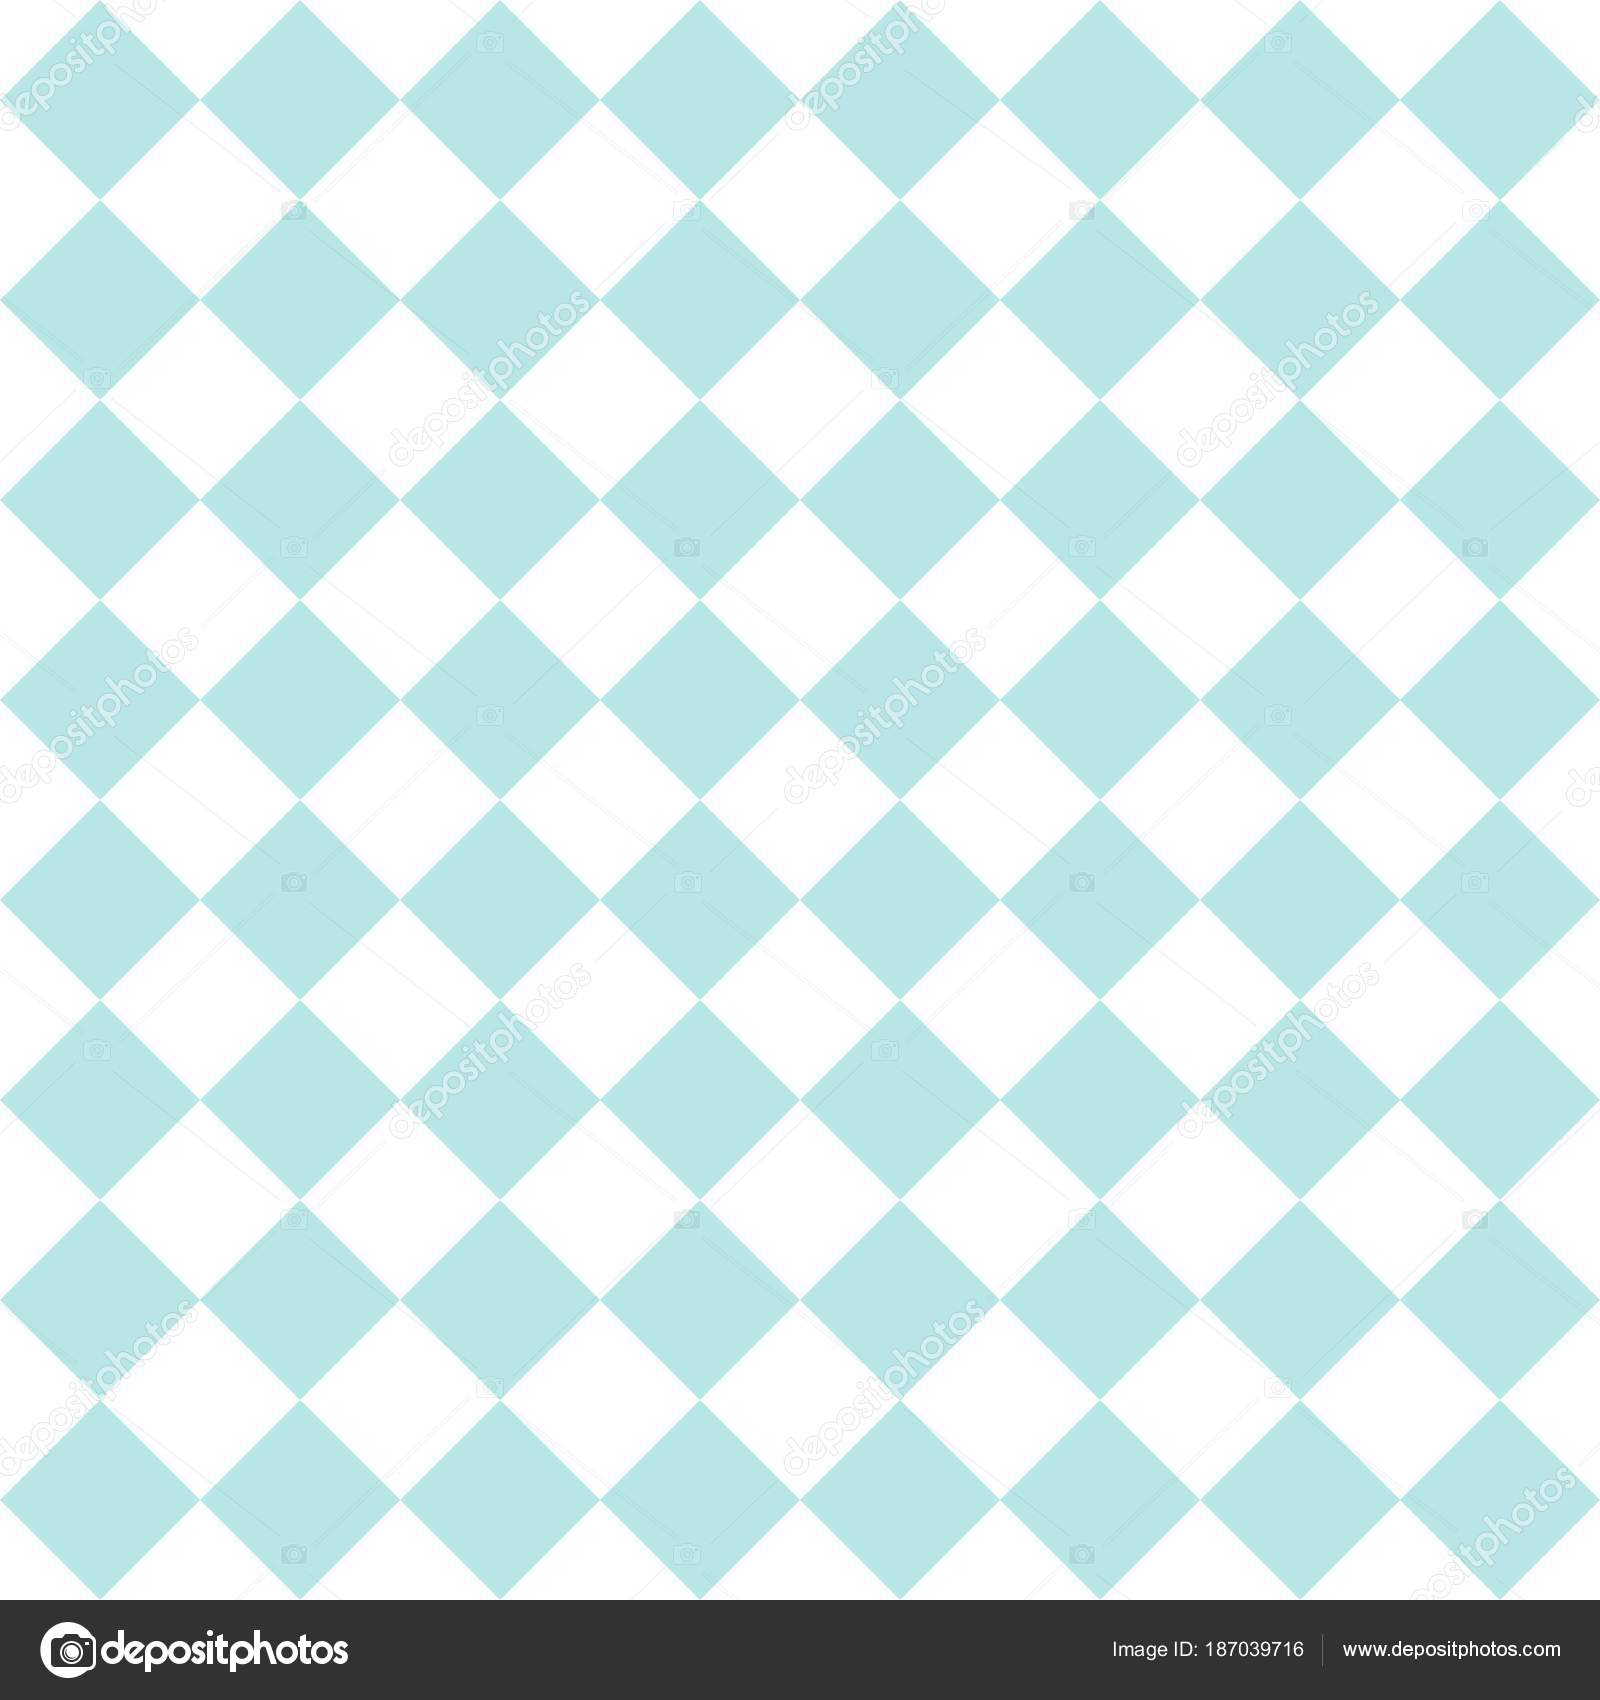 Checkered Tile Vector Pattern Mint Green White Wallpaper Background ...